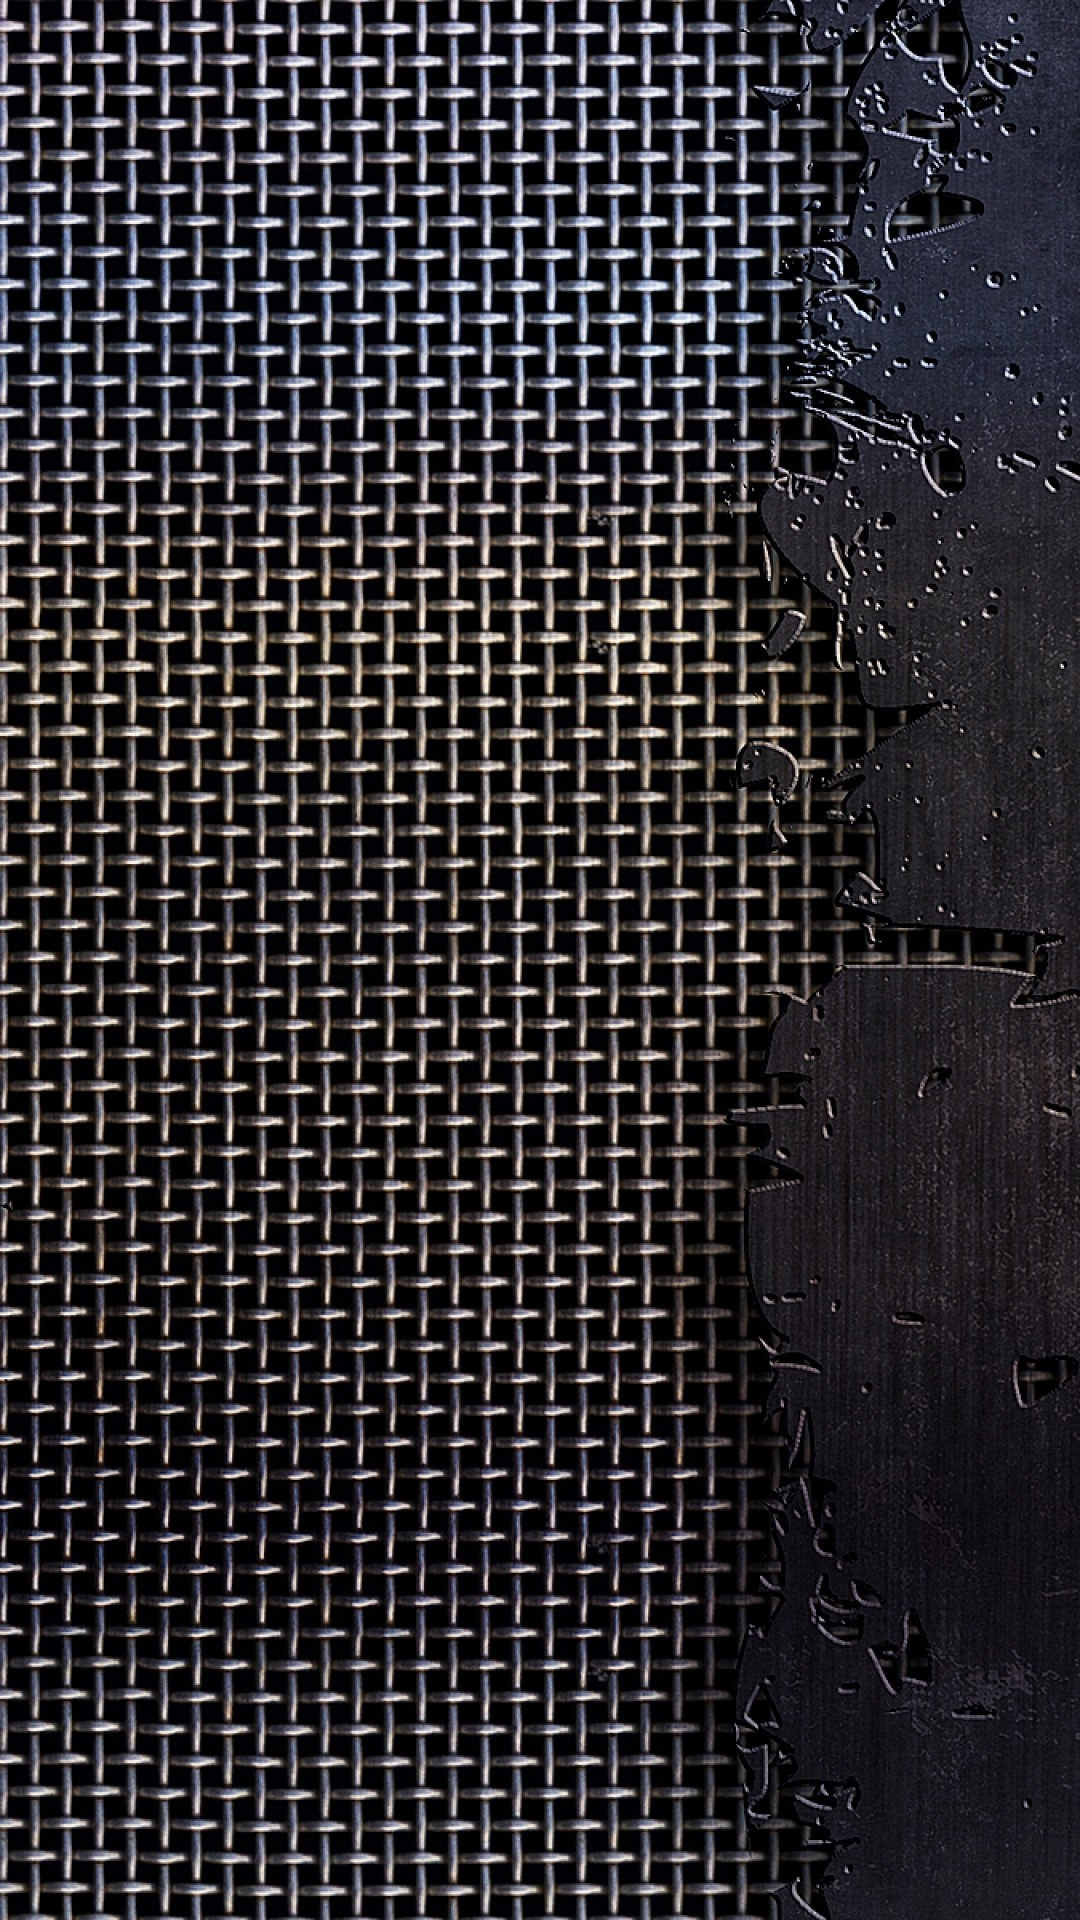 Wallpaper metal, mesh, cracks, scratches, black and white, texture